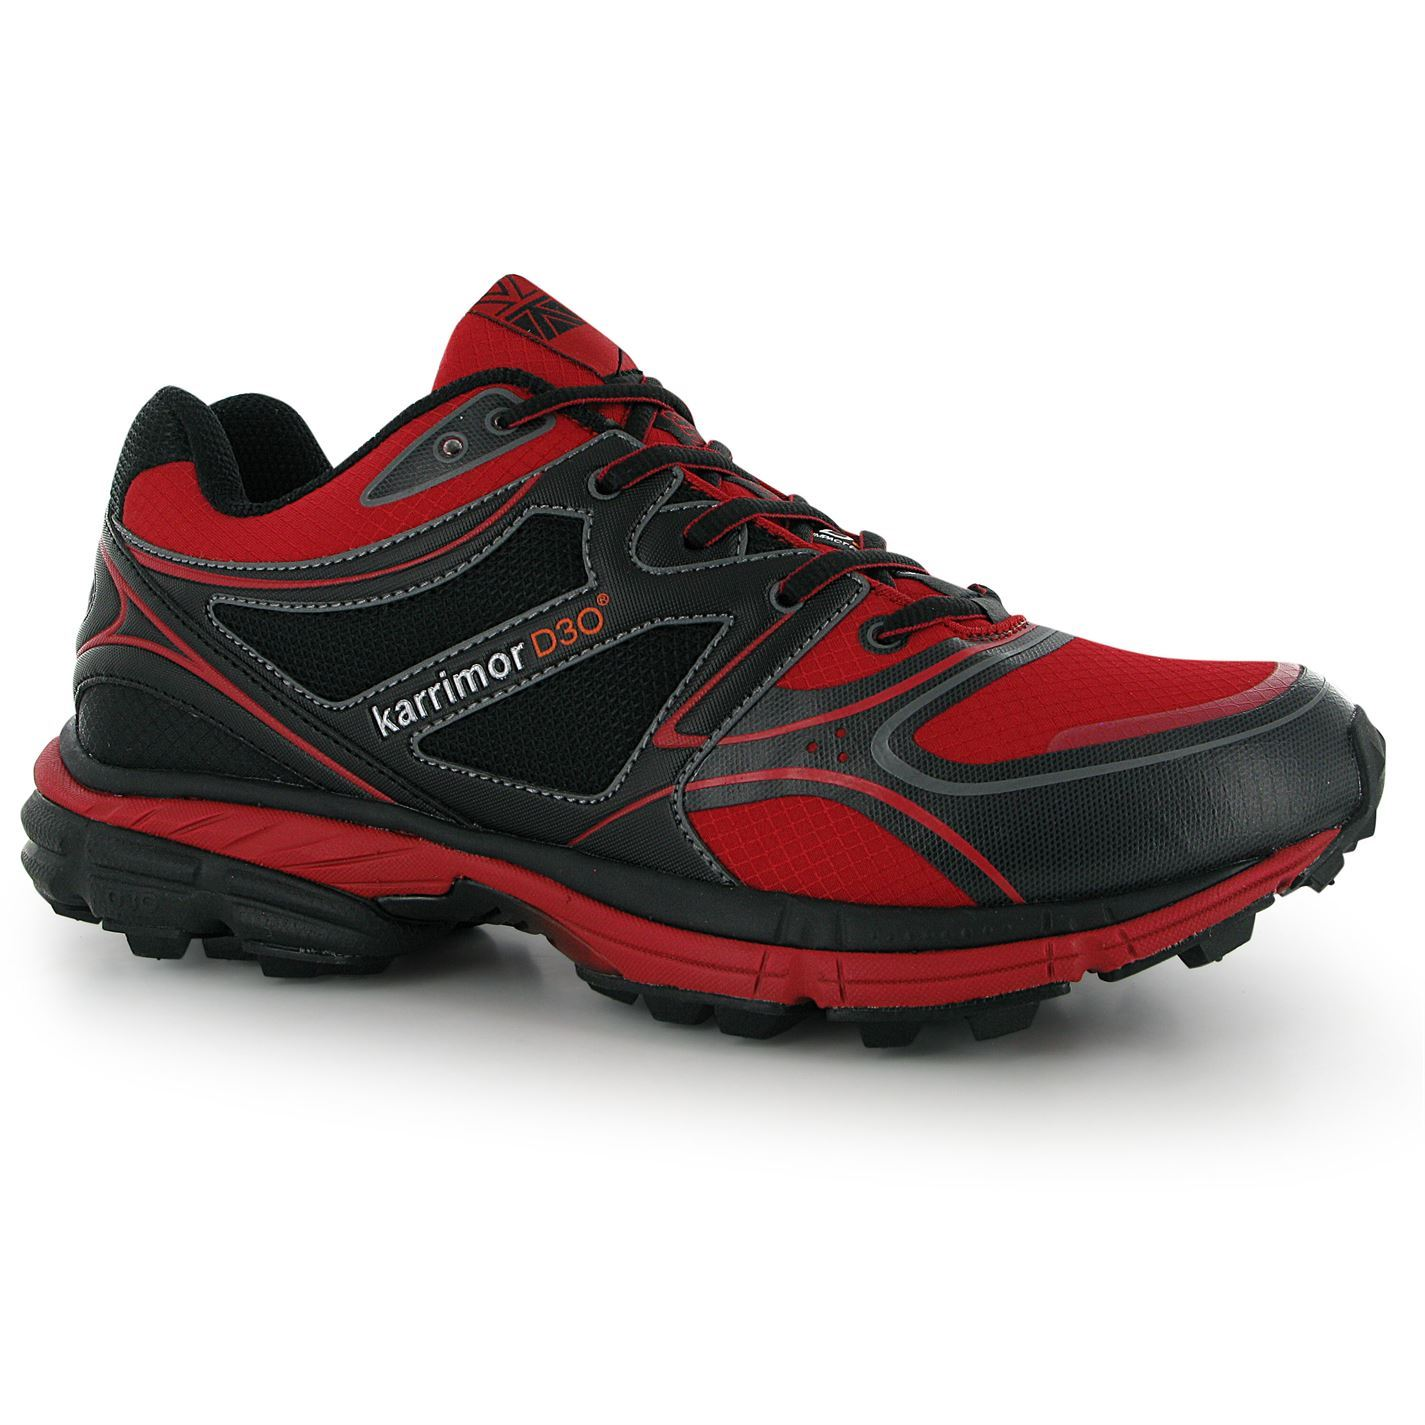 Karrimor Excel Waterproof D30 Mens Trail Running Shoes Review